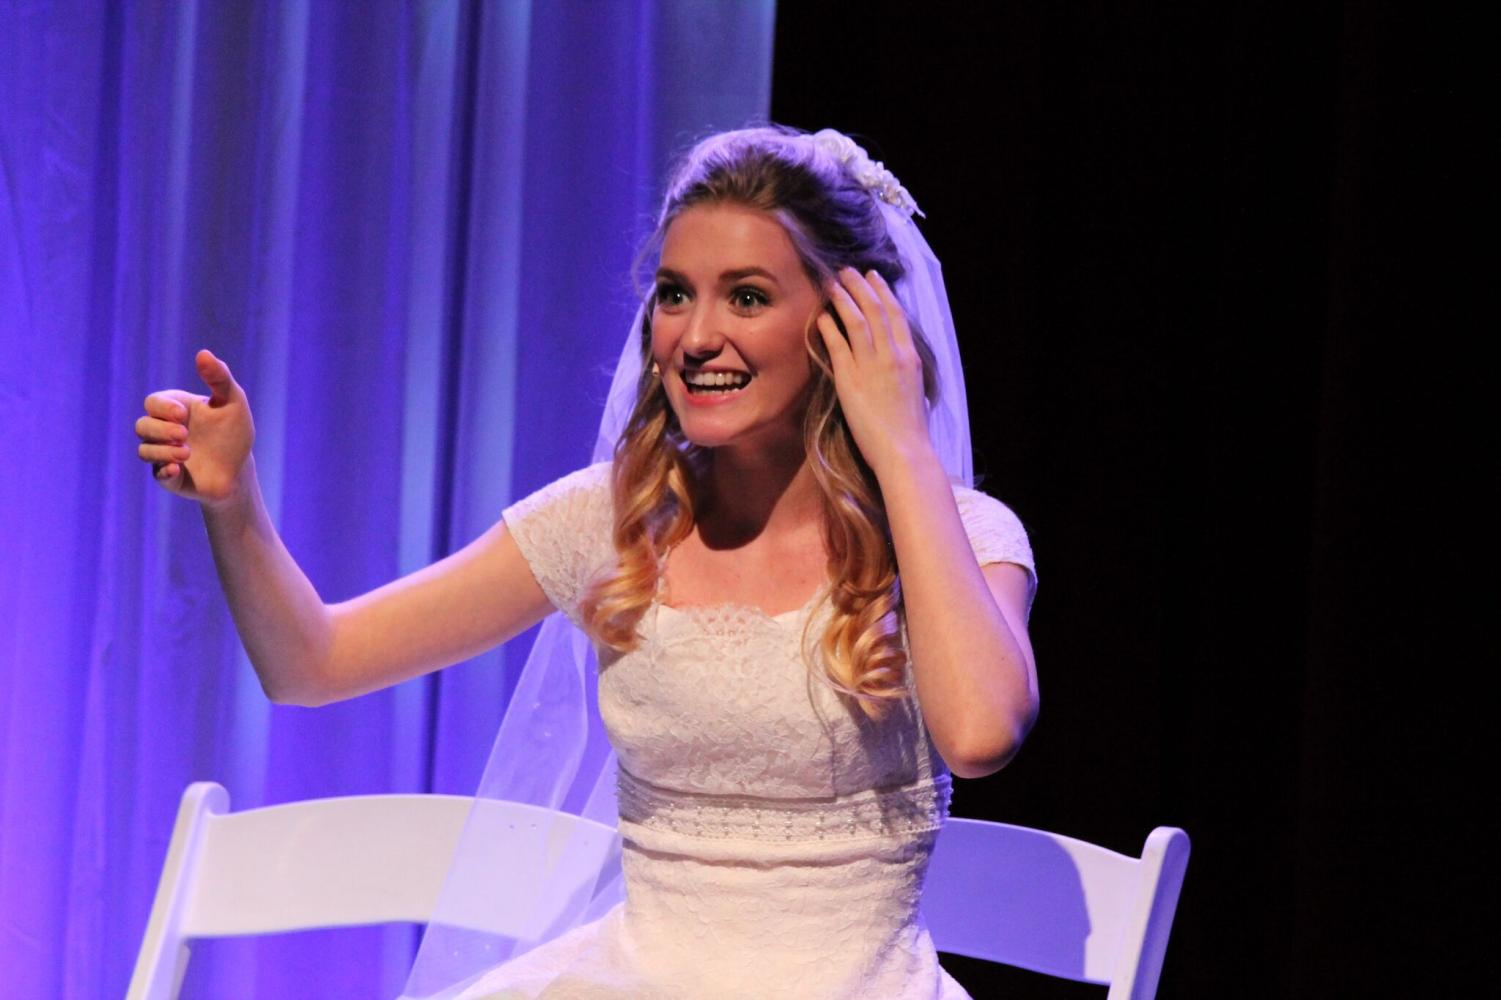 Katie schaber, who played the bride in the September show,